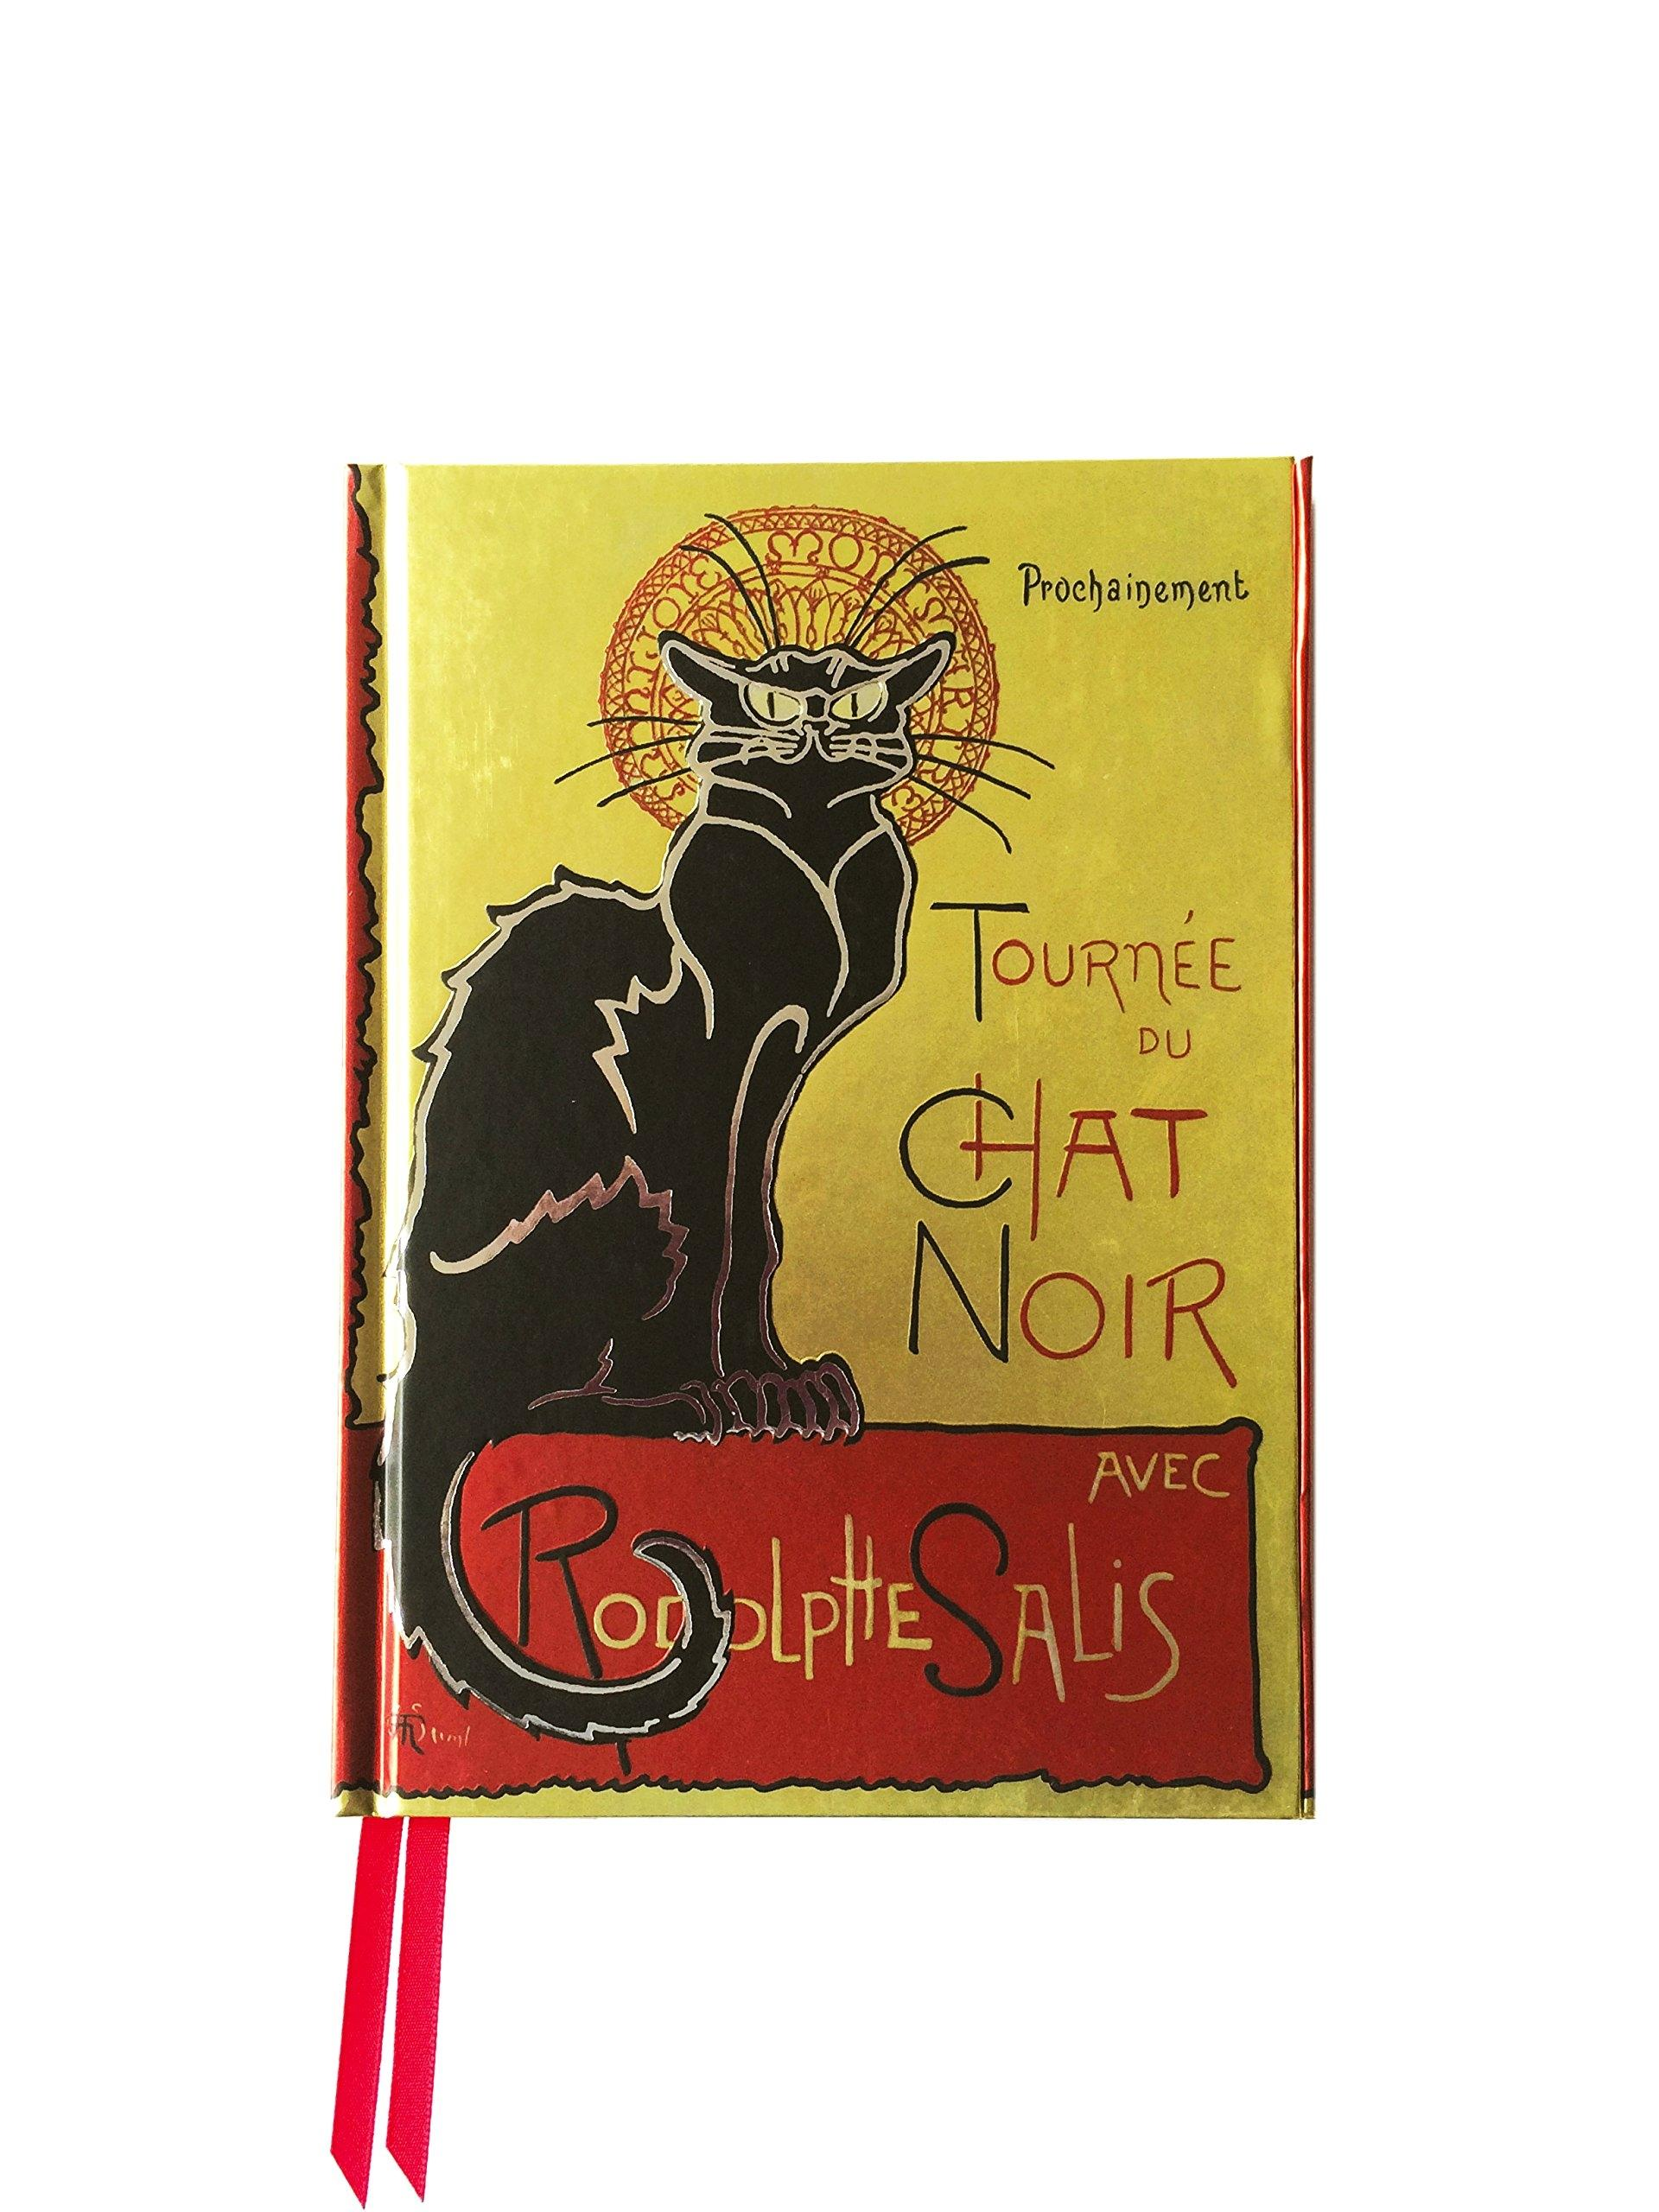 CUADERNO CHAT NOIR